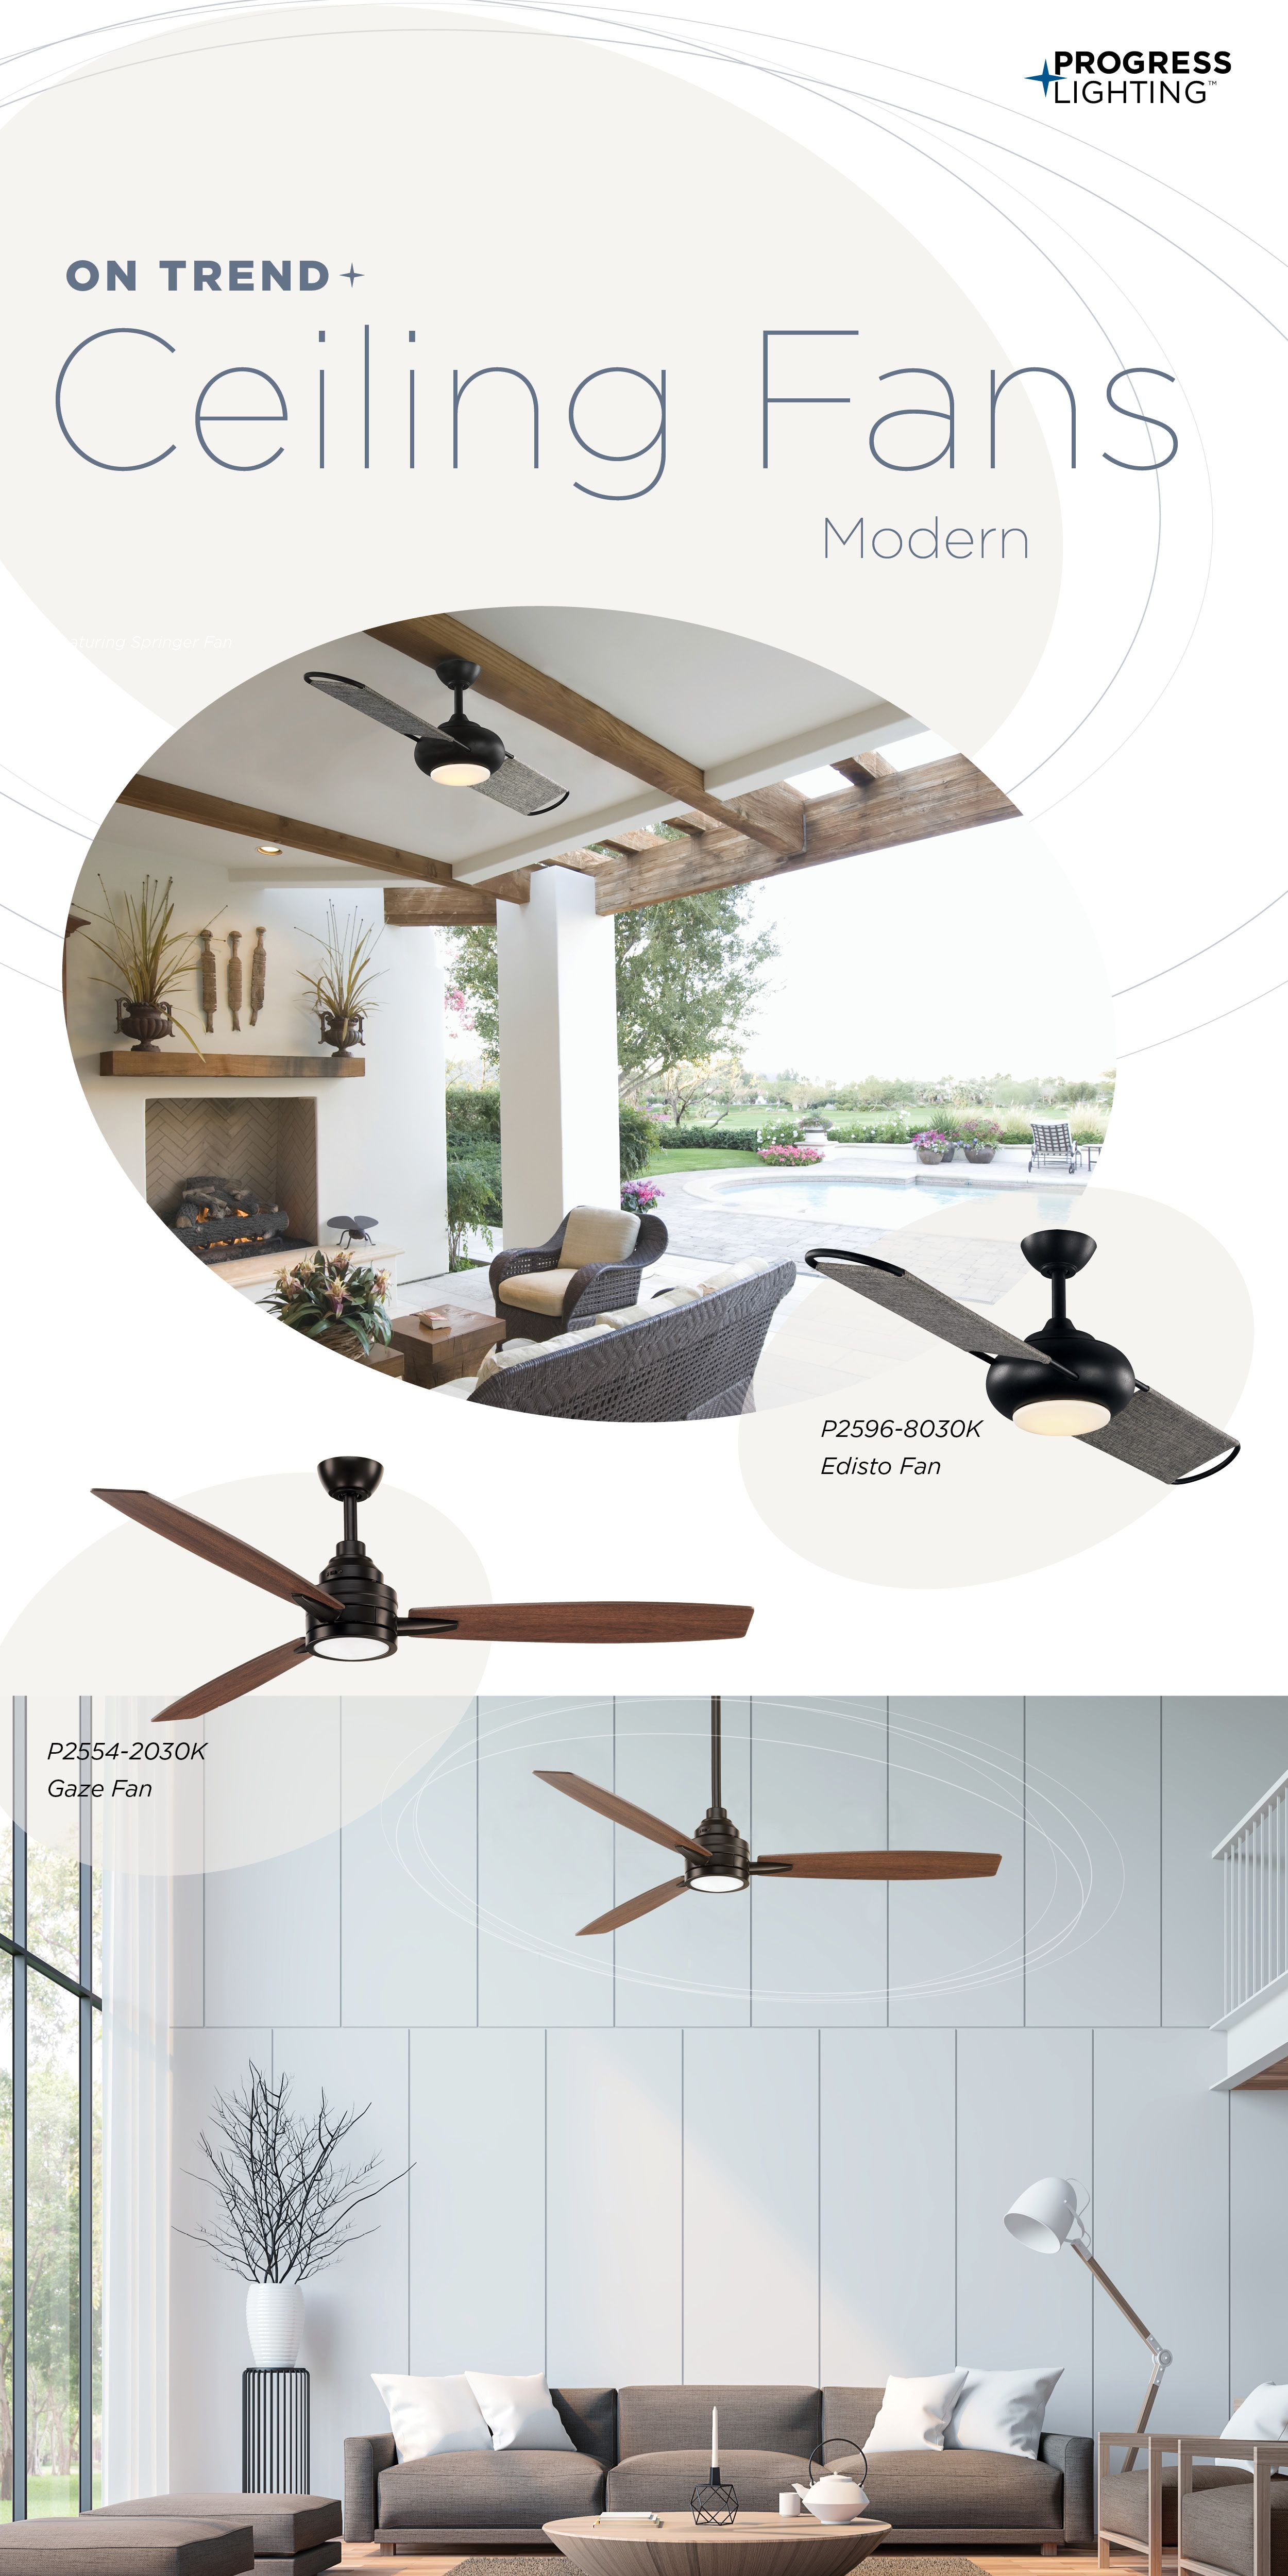 A Ceiling Fan Can Be A Great Way To Keep Cool This Summer Ceiling